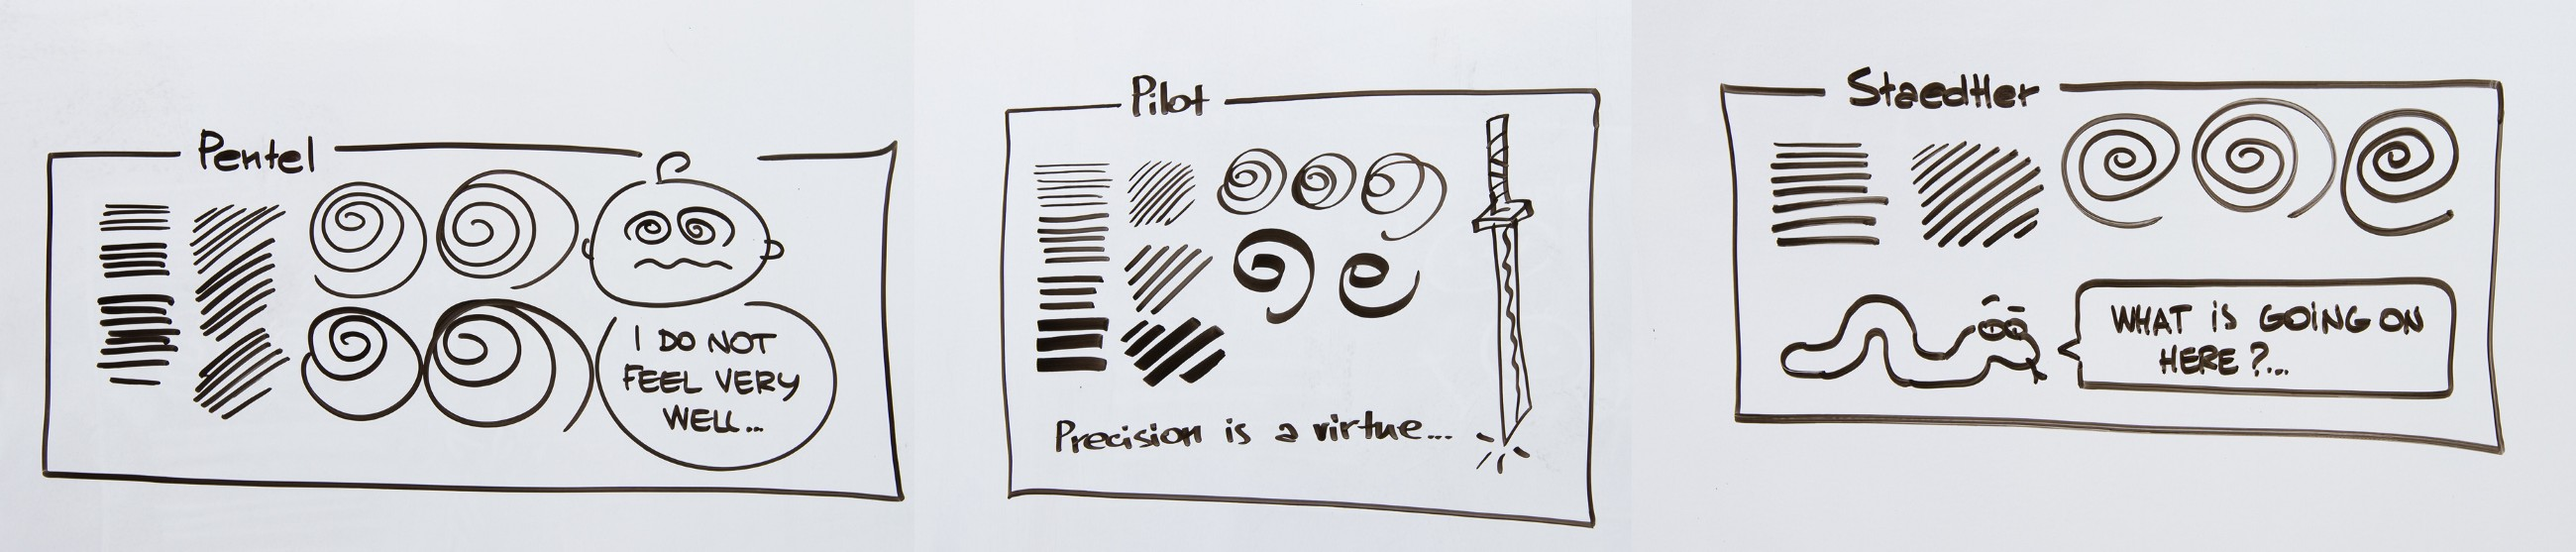 All You Need To Know About Whiteboard Markers Graphicfacilitation Here Is The Final Schematic Somewhat Simplified Pentel Pilot And Staedtler Put Test Of Tip Flexibility